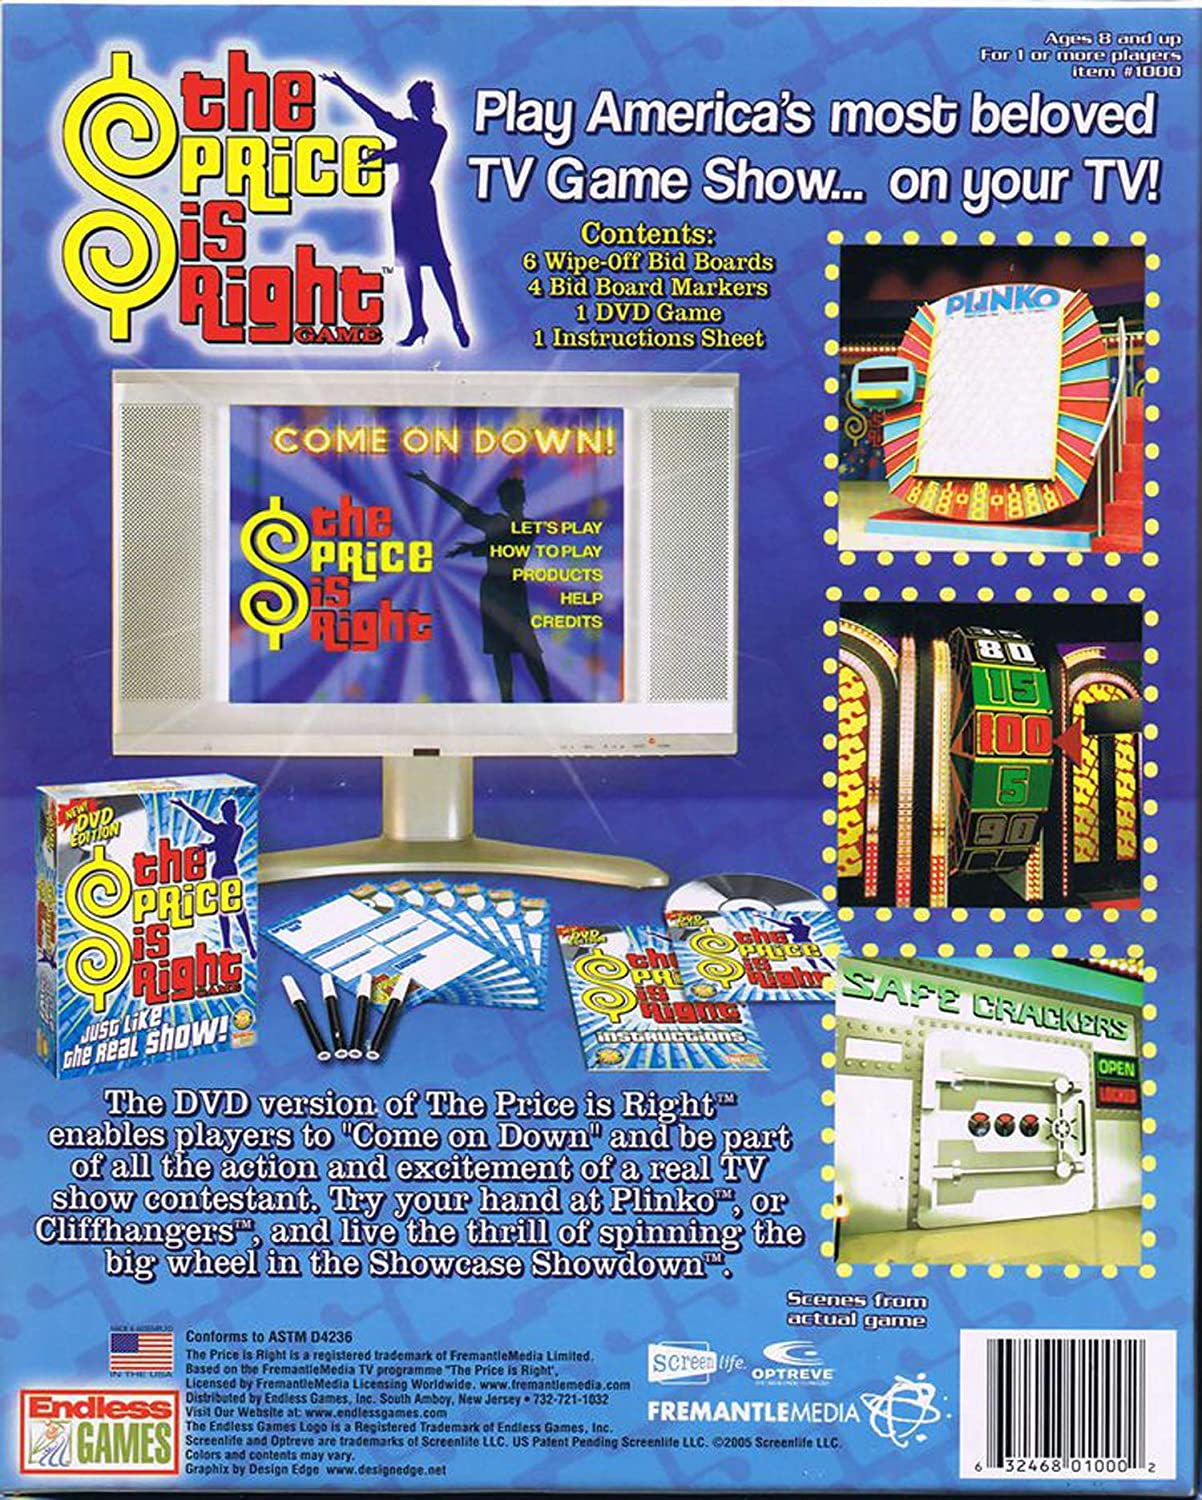 Amazon Com Endless Games The Price Is Right Game Dvd Edition Toys Games